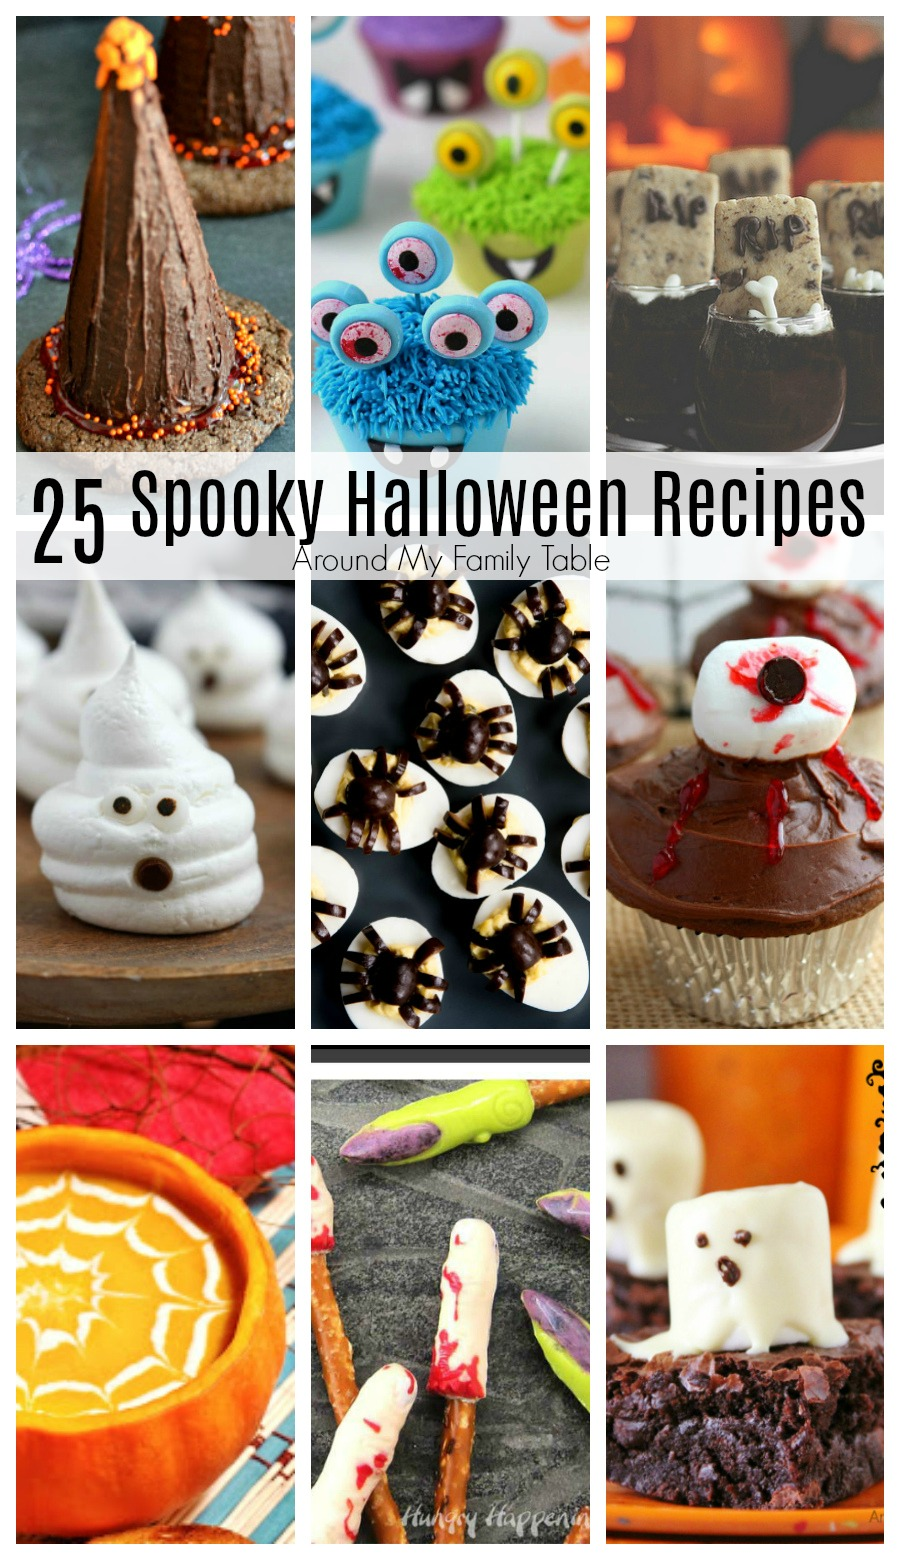 If you are looking for a little inspiration for some Spooky Halloween Recipes, you've come to the right place. These 25 Spooky Halloween Recipes will be the perfect addition to any October party.